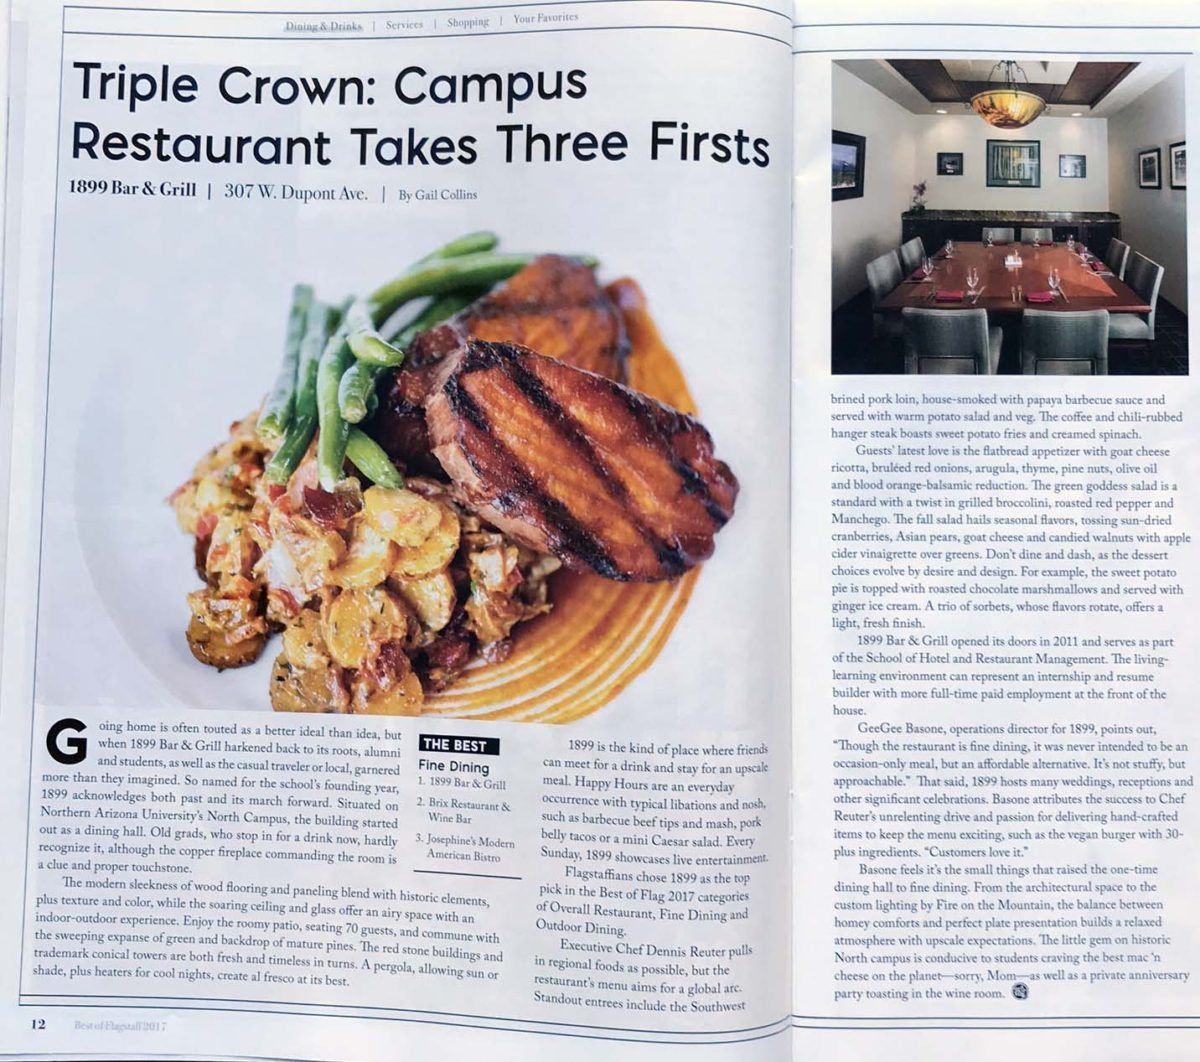 Triple Crown:  Campus Restaurant Takes Three Firsts